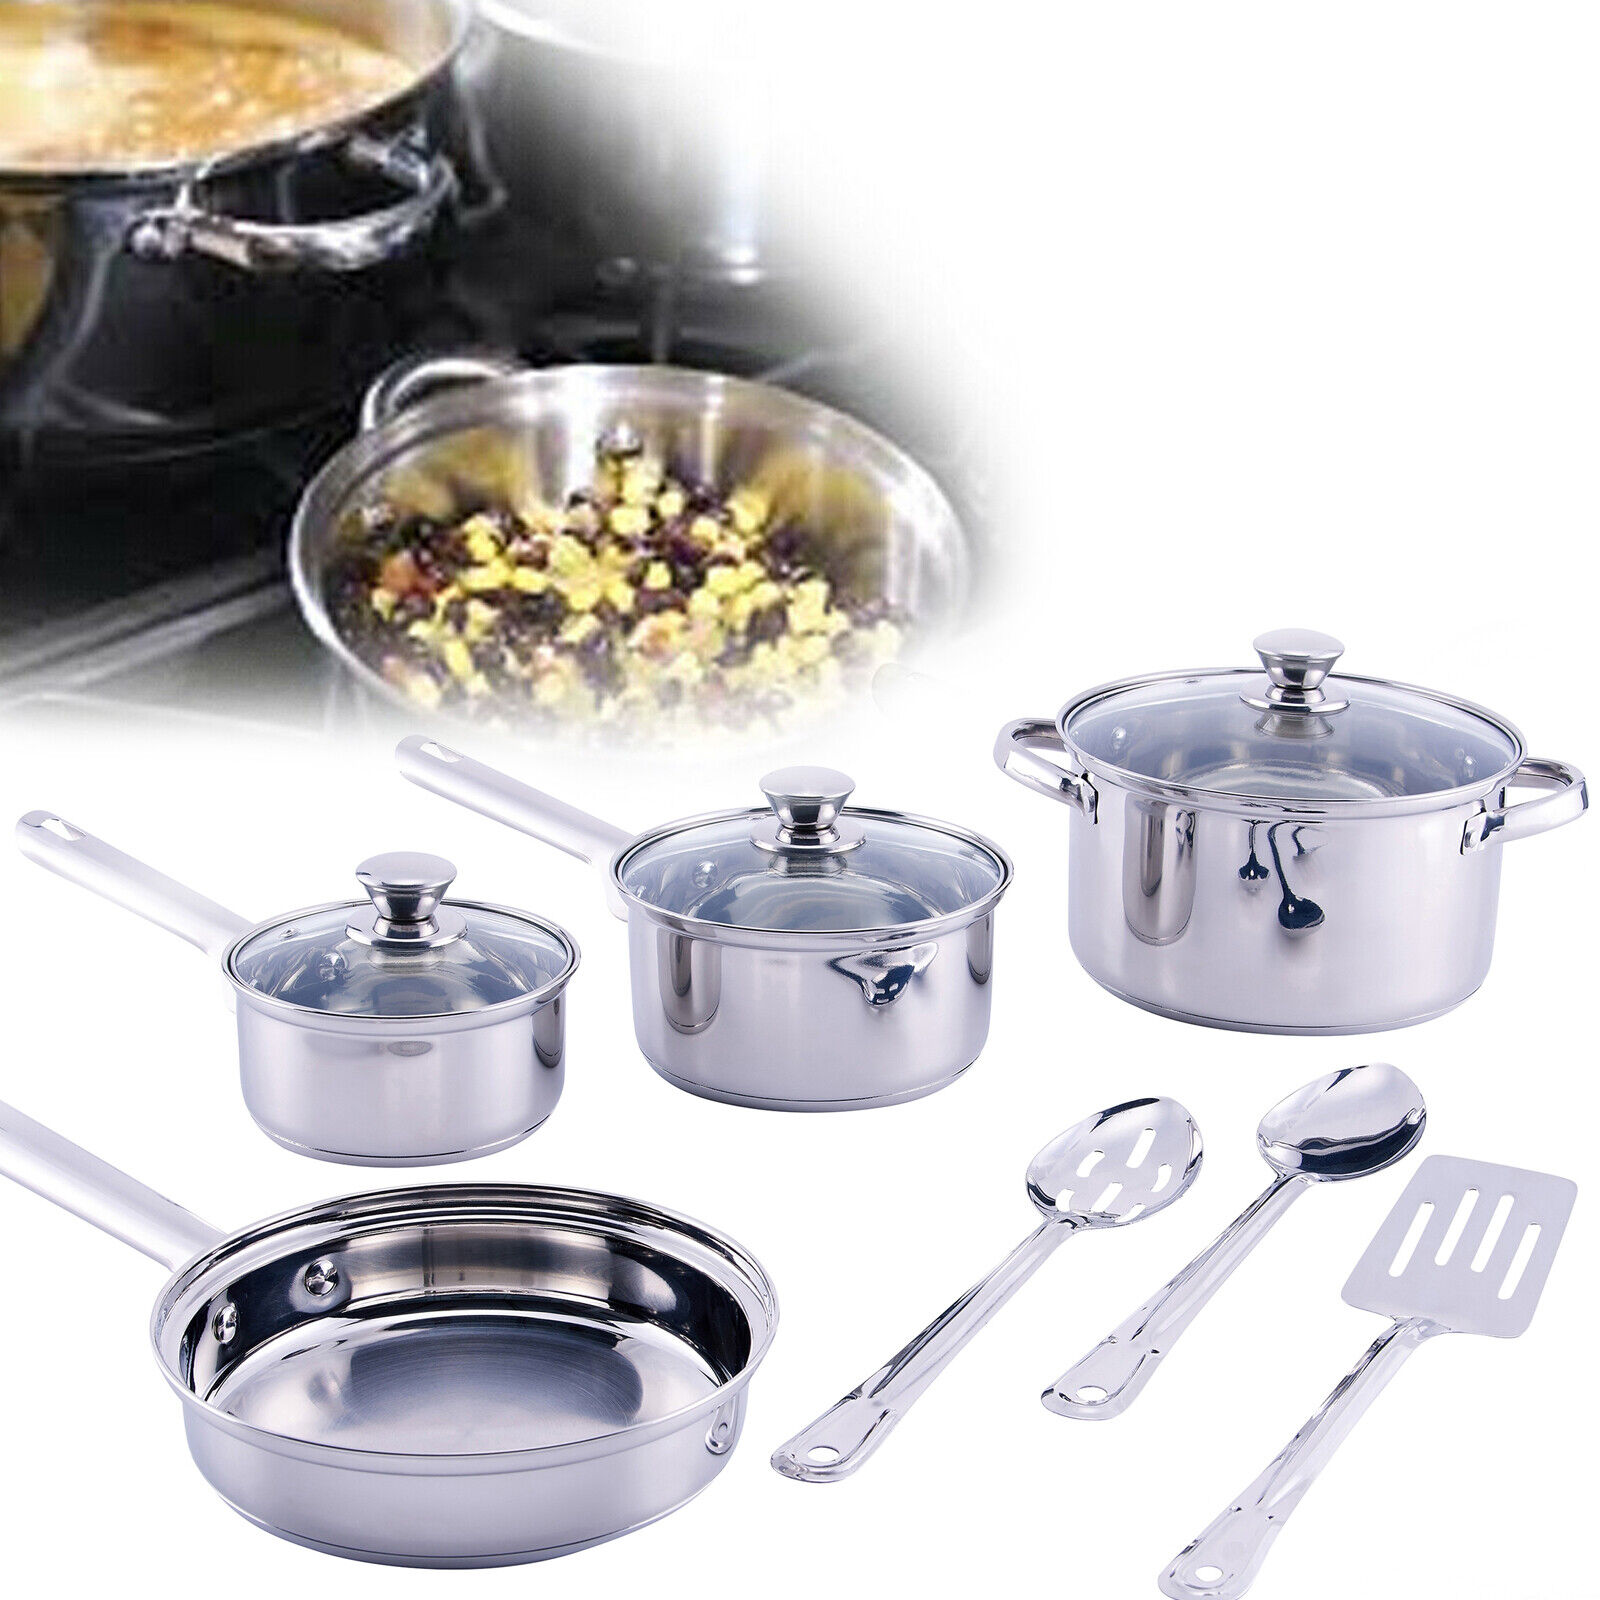 KITCHEN COOKWARE SET 12-Piece Stainless Steel Pot Pan And Ut